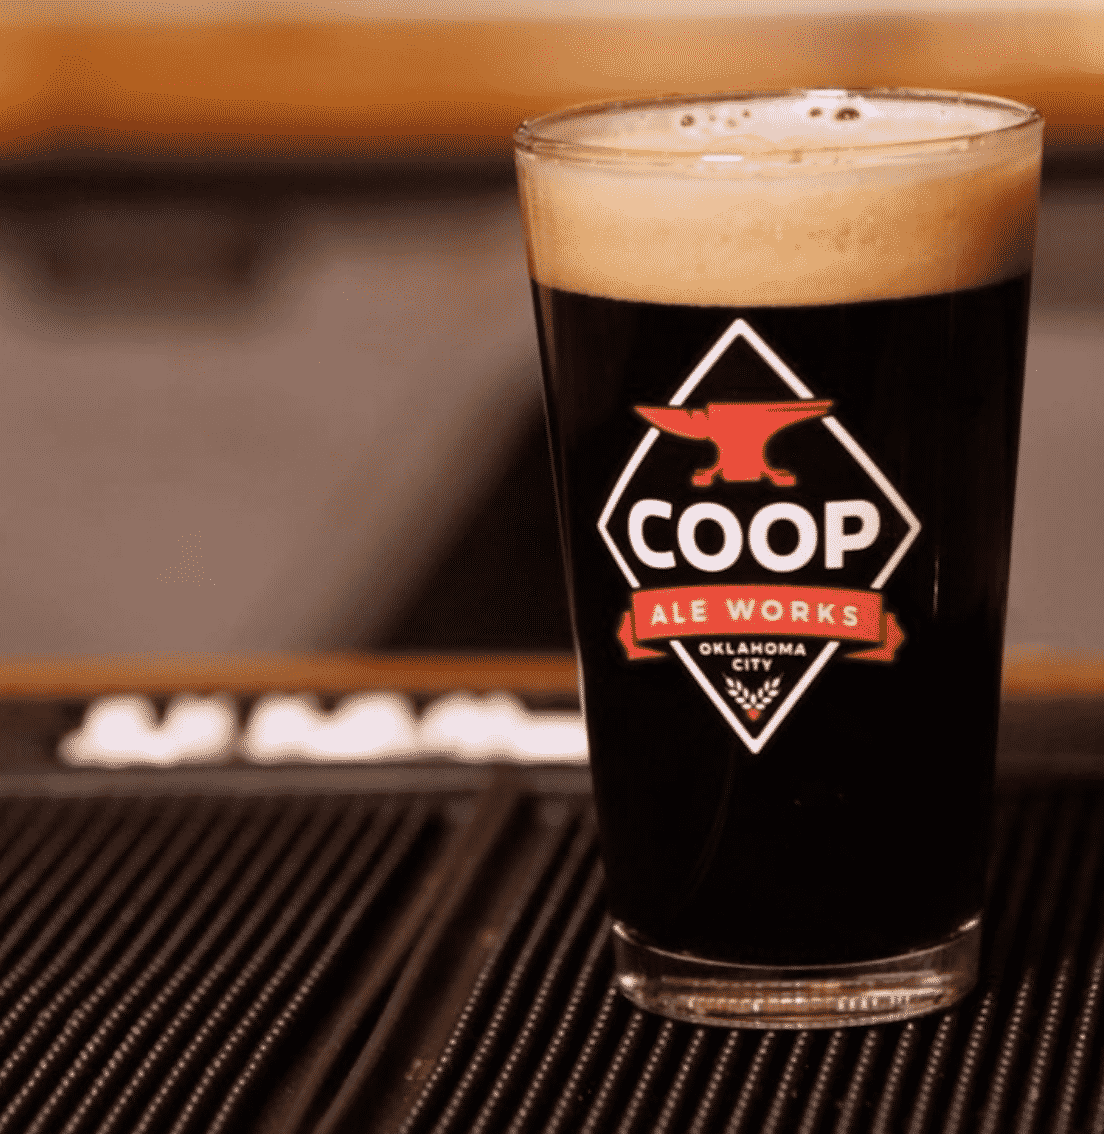 Coop Ale Works Craft Brewery